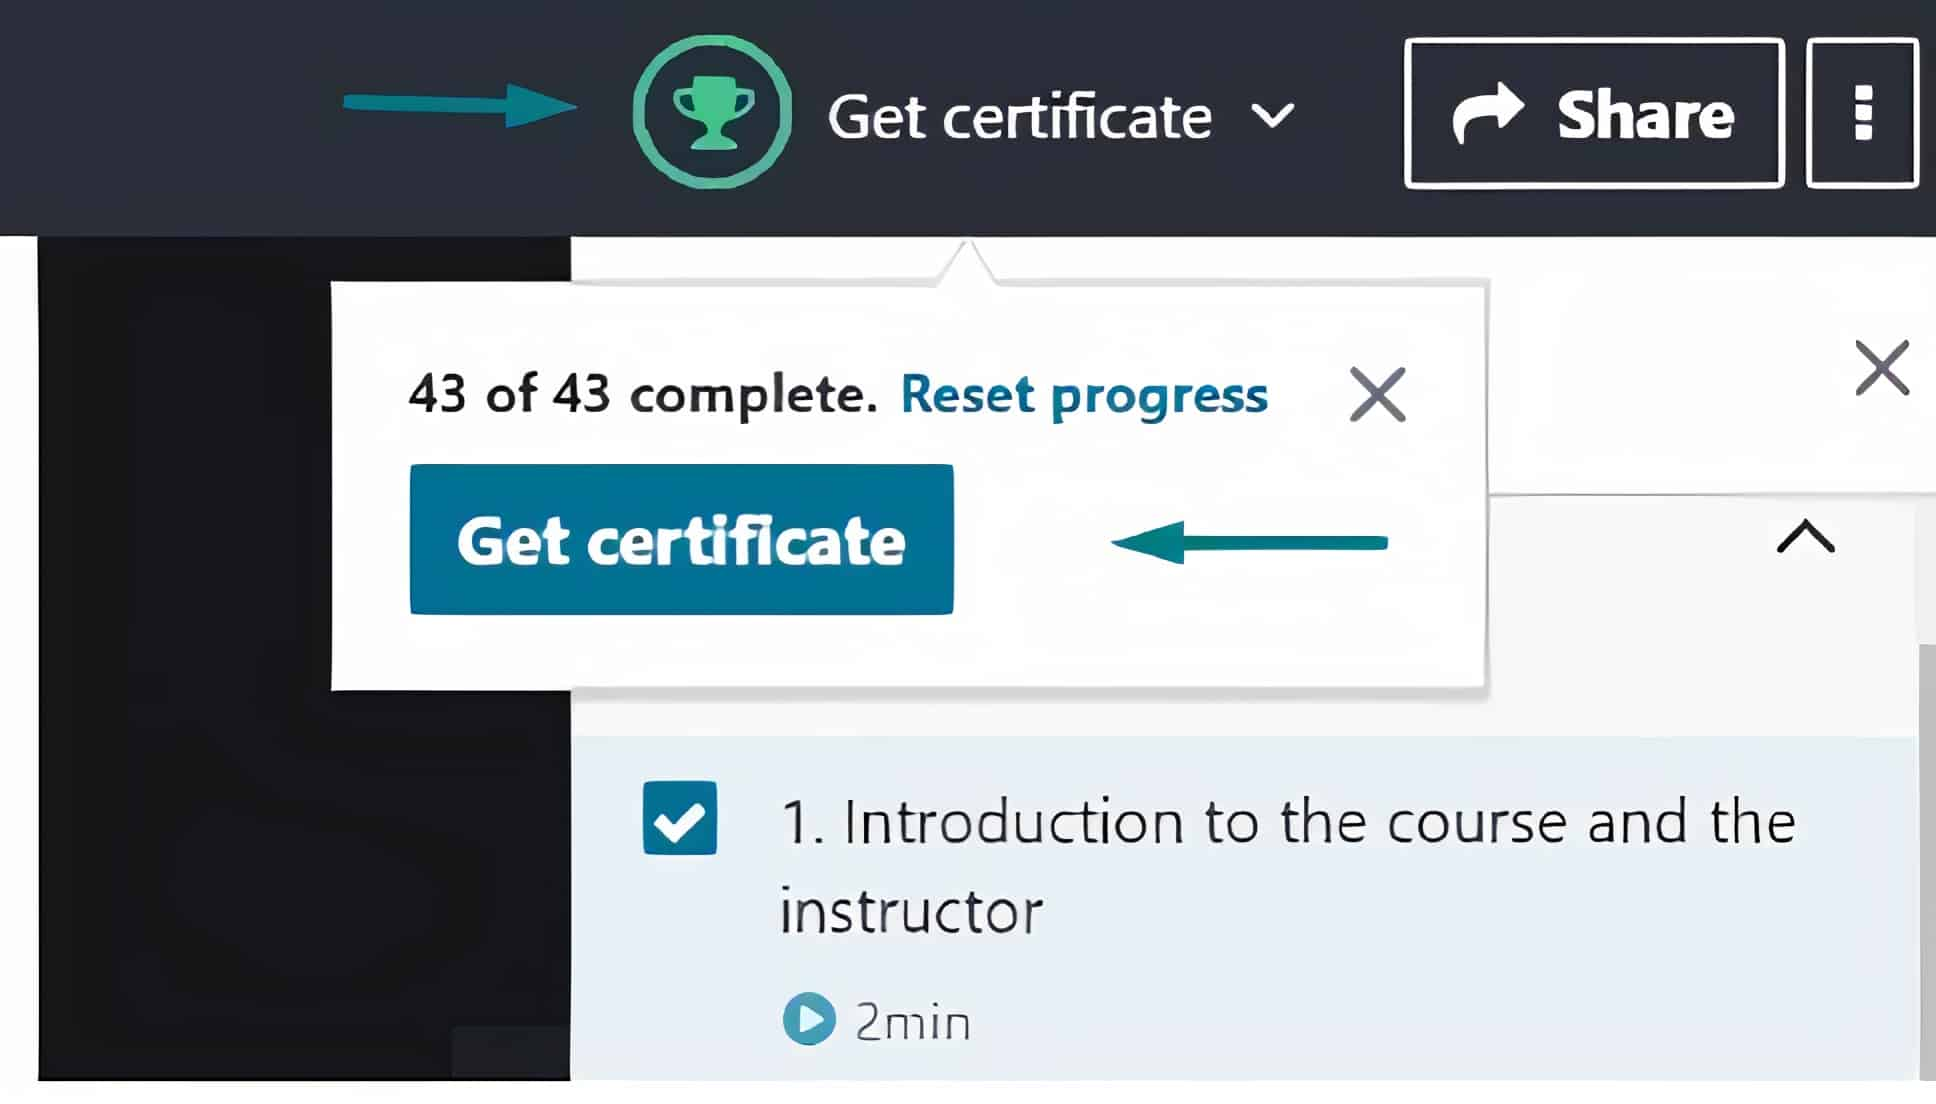 How to get a Udemy certificate?